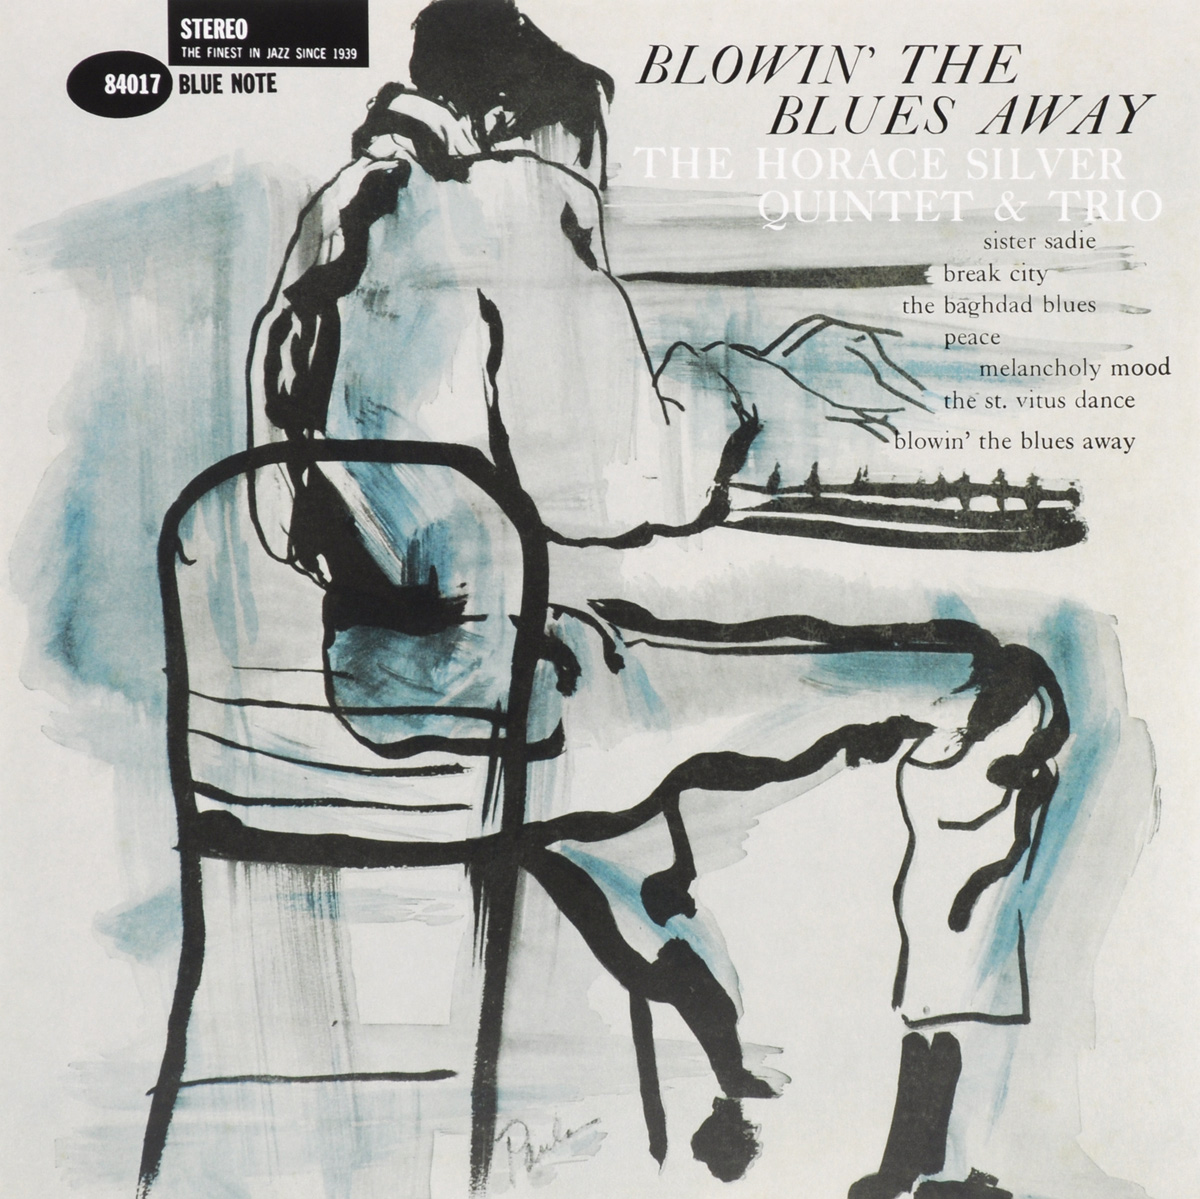 The Horace Silver Quintet Horace Silver Quintet & Trio. Blowin' The Blues Away (LP) the counterlife